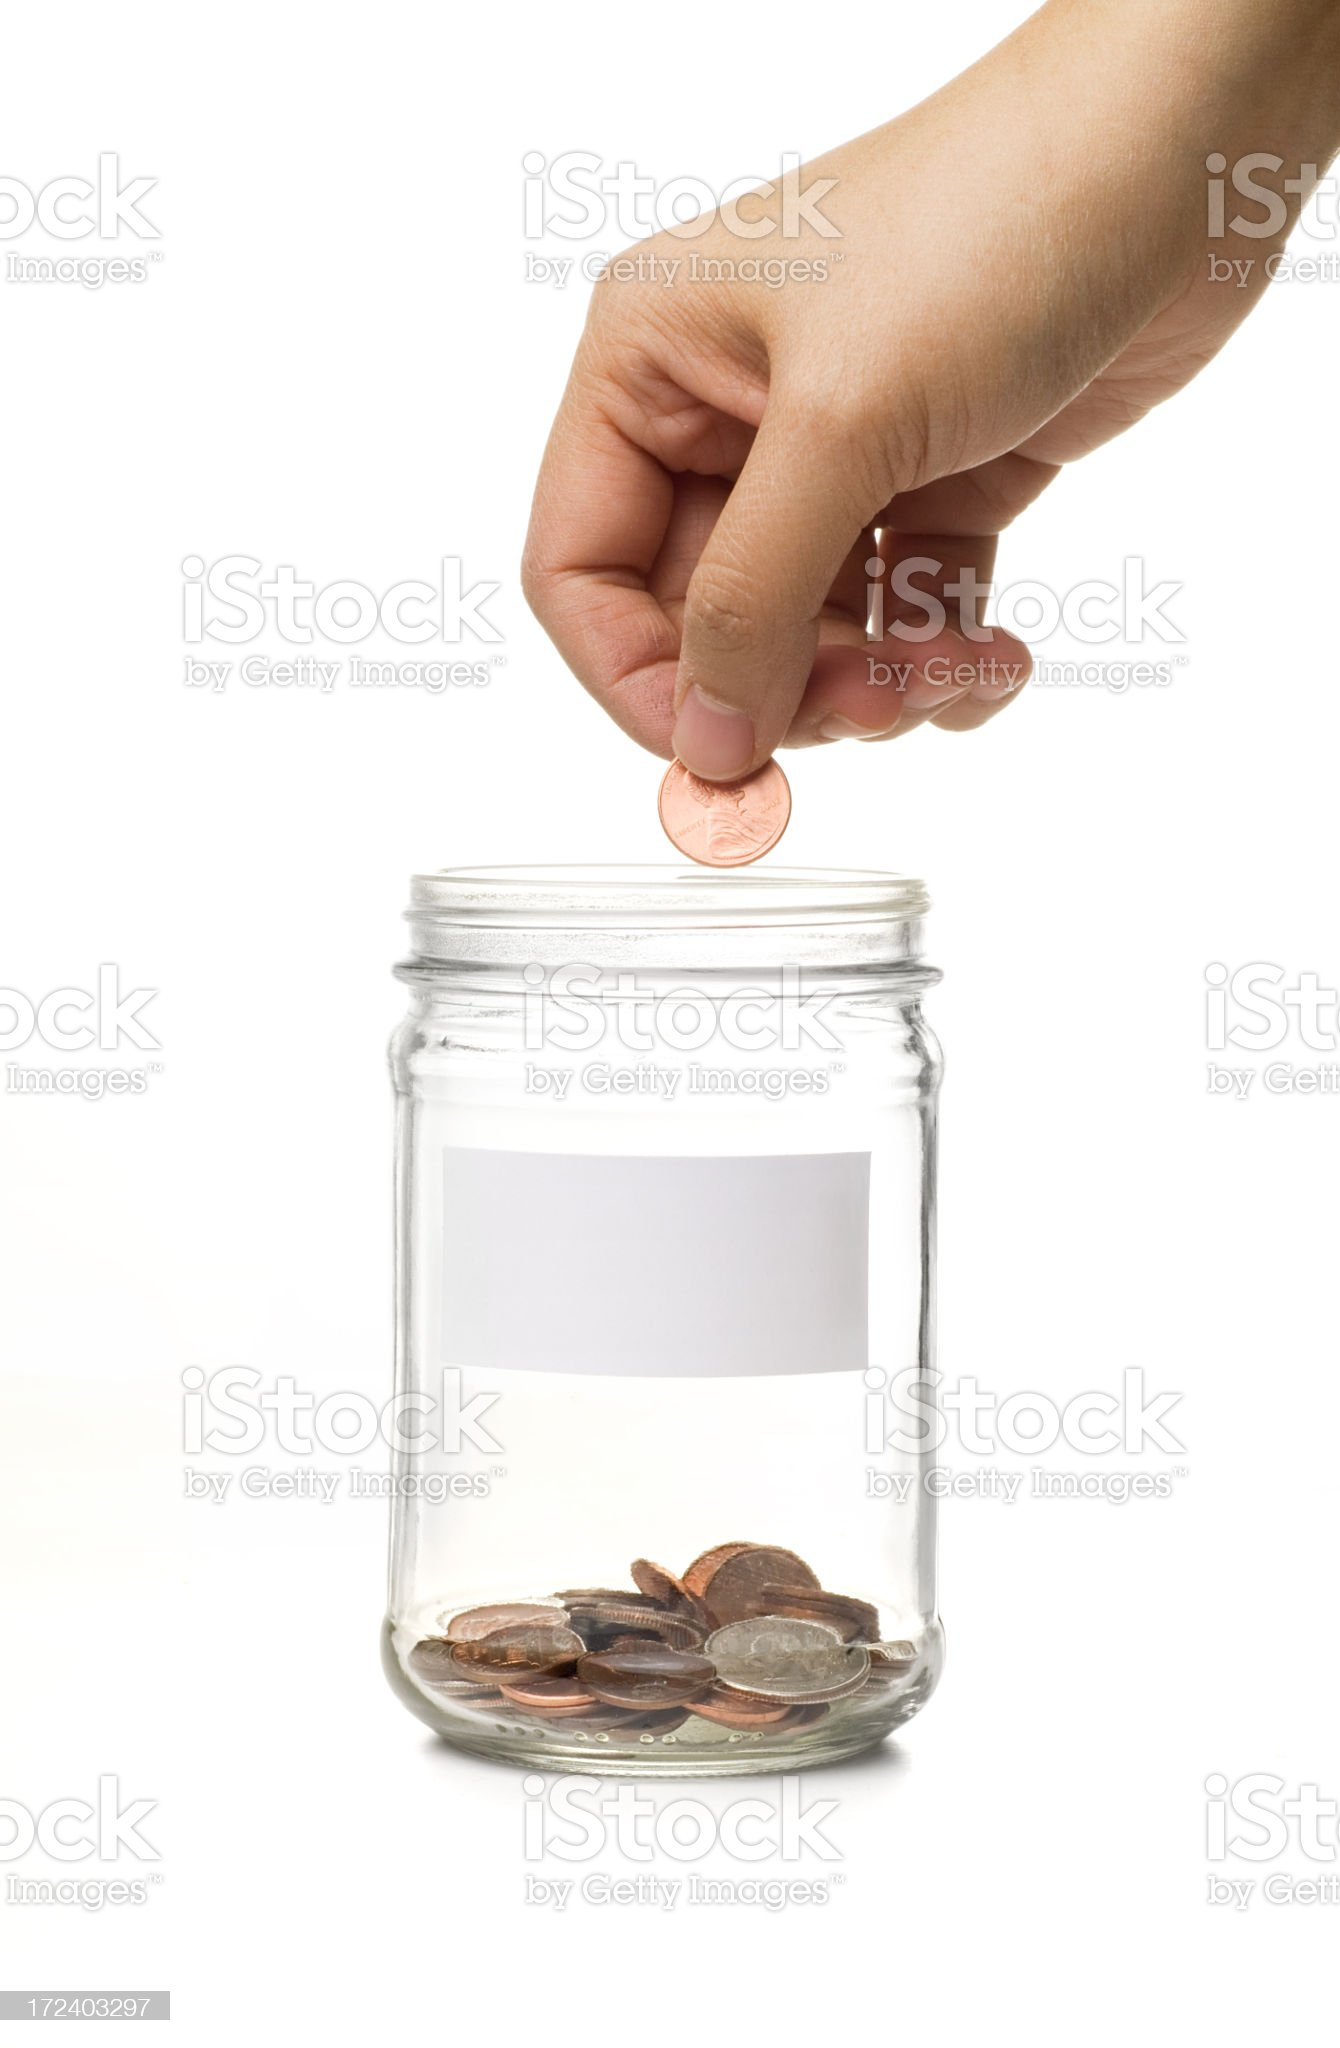 Filling the Coin Jar royalty-free stock photo